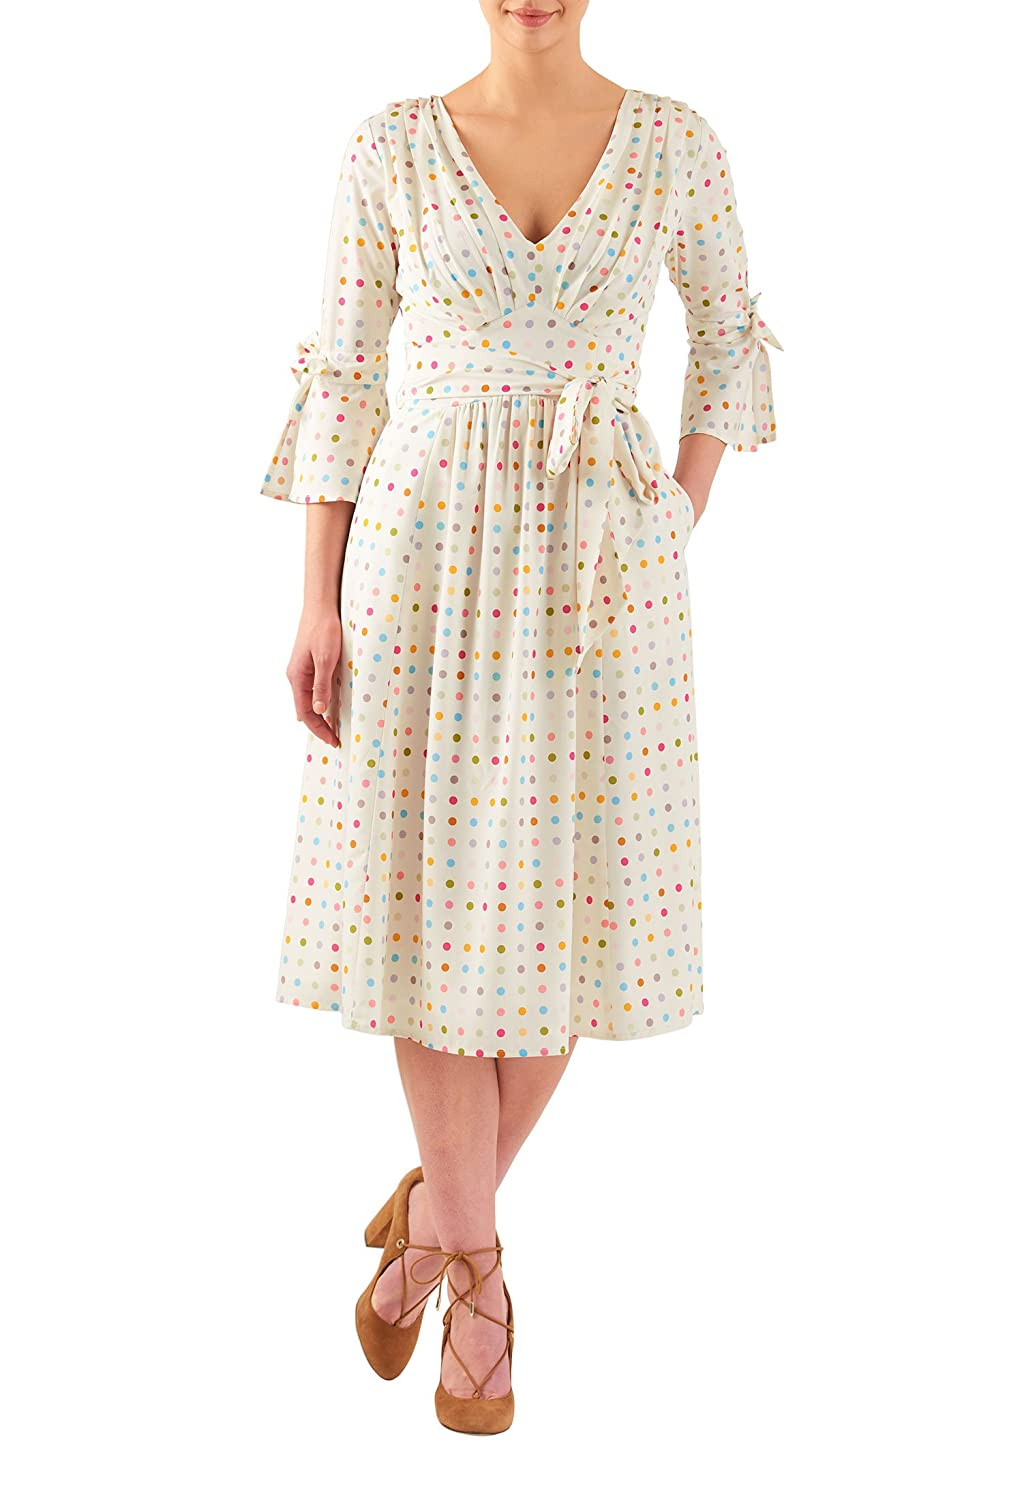 1960s Style Dresses- Retro Inspired Fashion Pleated polka dot print crepe midi dress $64.95 AT vintagedancer.com